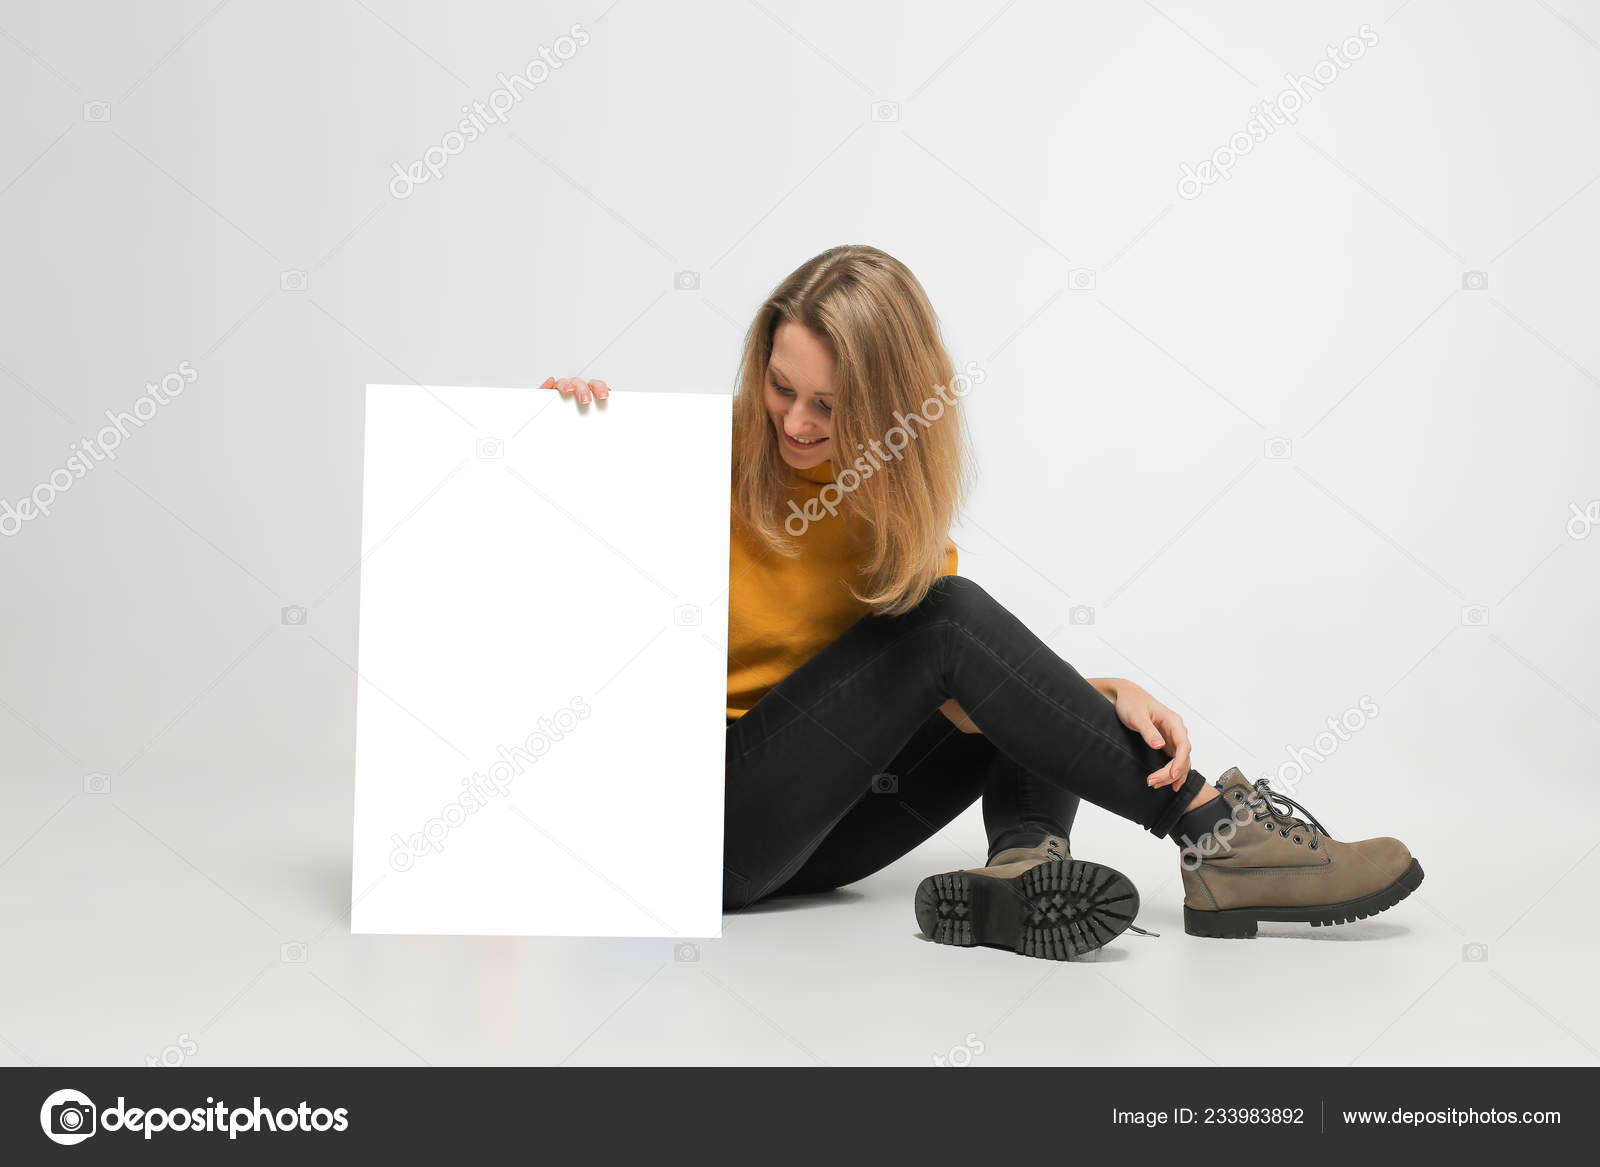 ... woman with blond hair, wearing casual outfit, boots, is sitting on white floor, holding white makeup poster, isolated on white background — Photo by Bo.